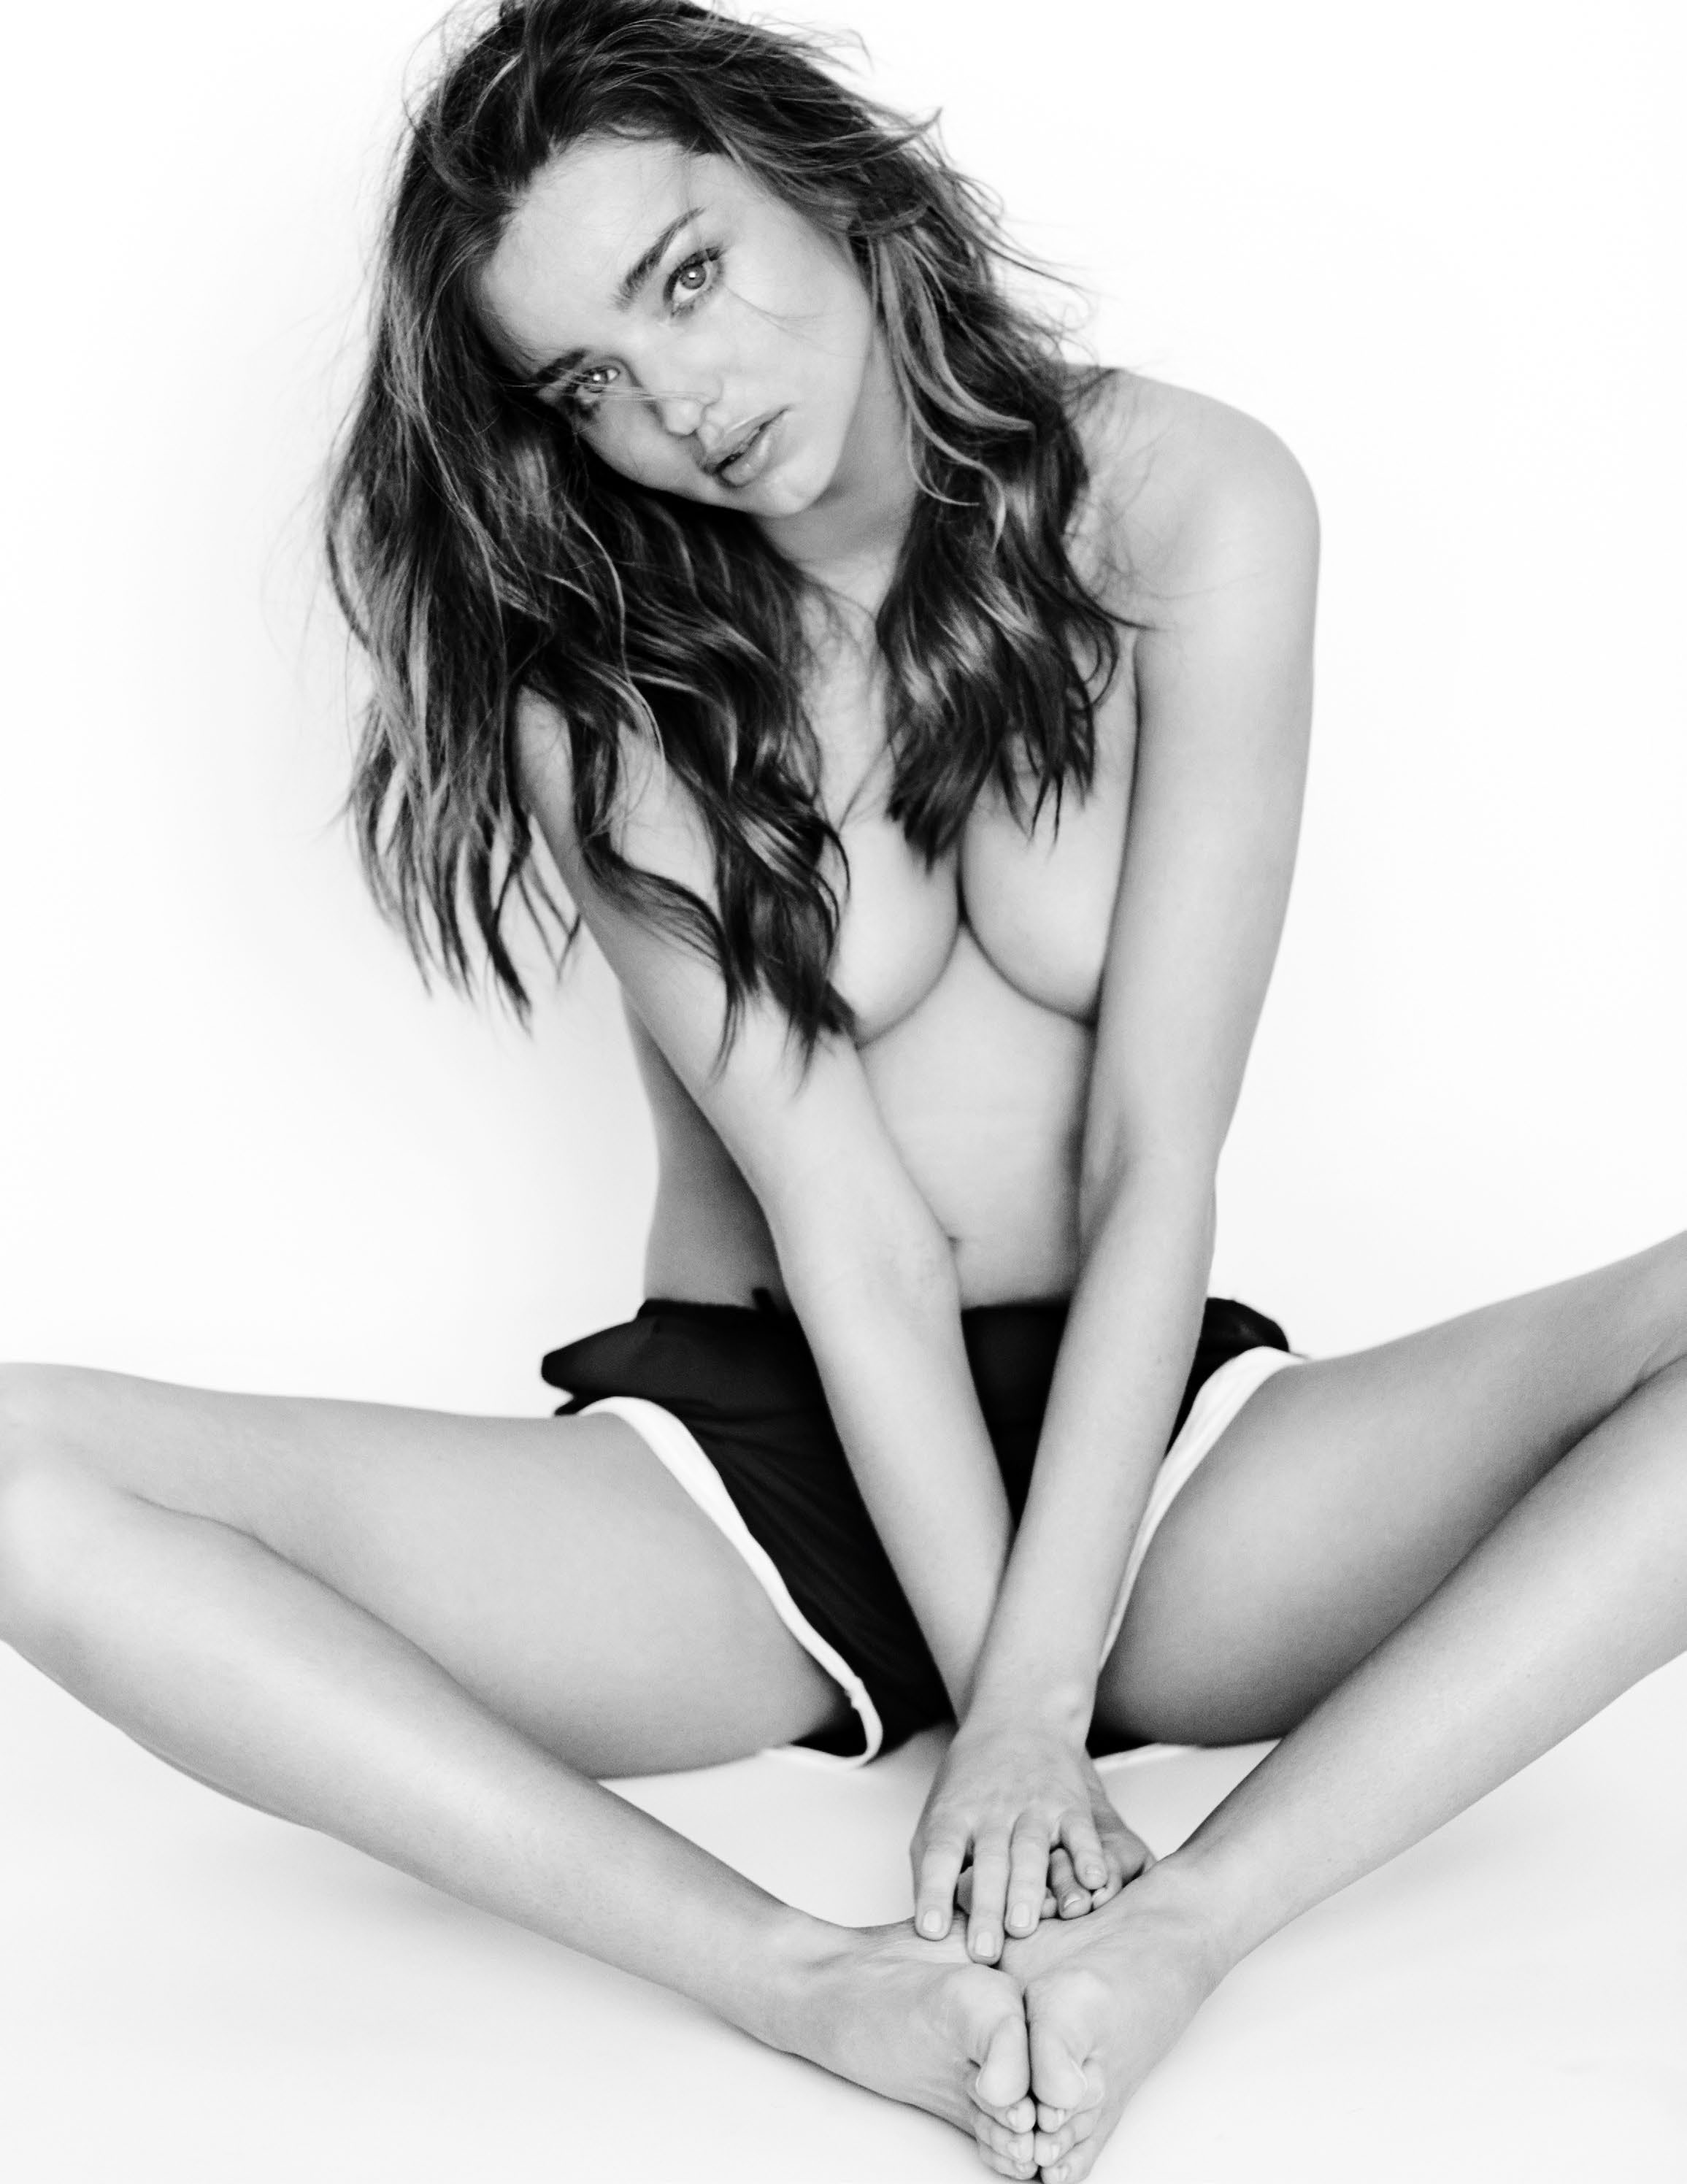 miranda-kerr-by-mario-testino-for-gq-uk-may-2014-11